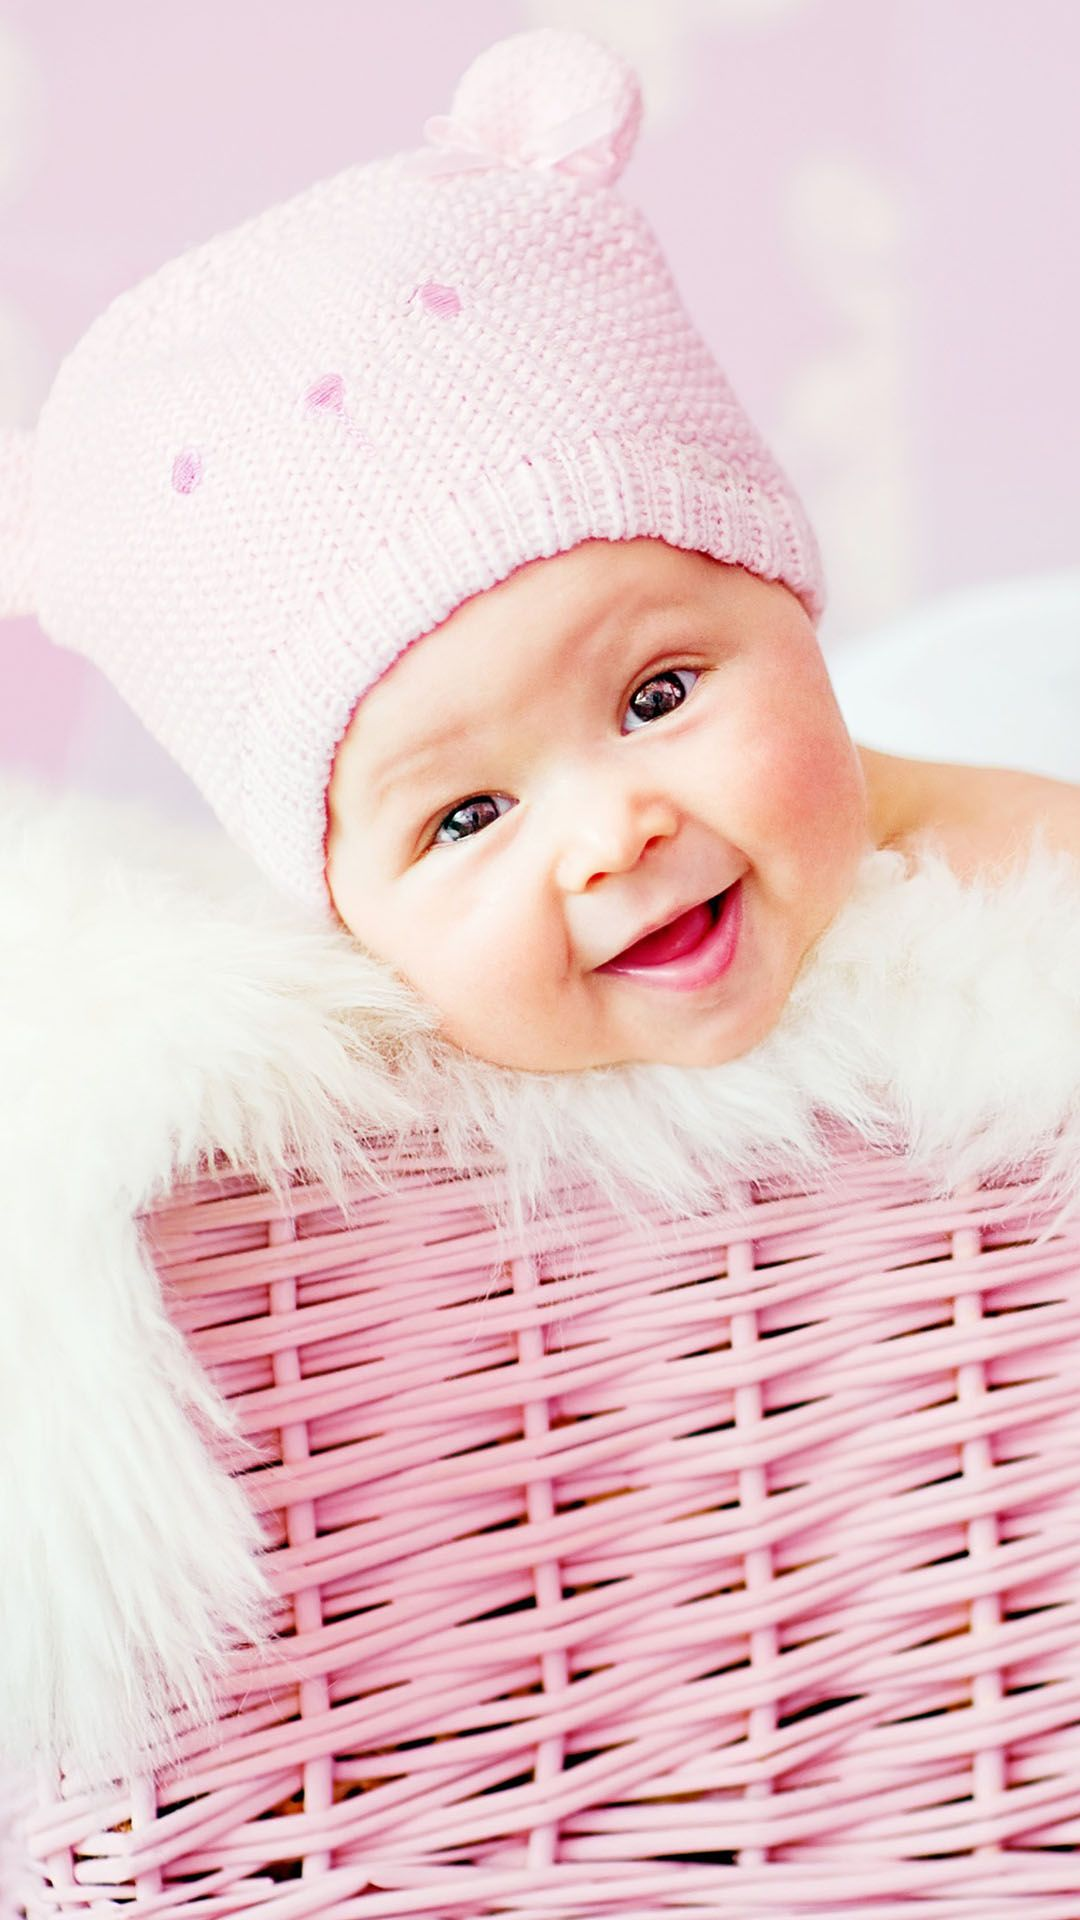 cute laughing baby | daily iphone 6/5/4 wallpapers | pinterest